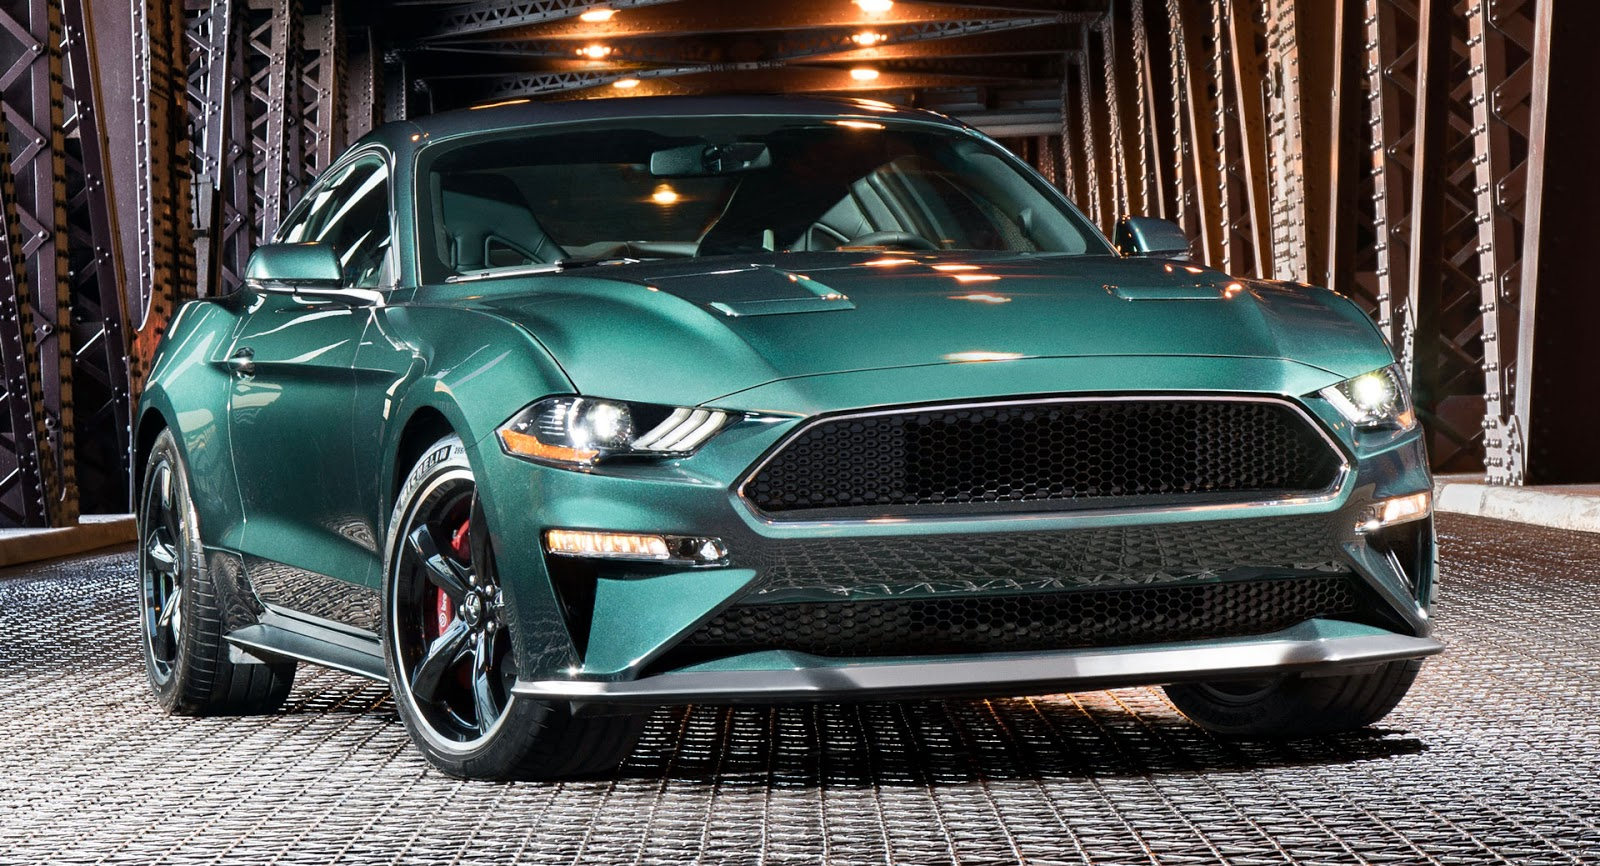 The Rumors Were True As Ford Presented A New Generation Of Its Lauded  Mustang Bullitt Based On The S 550 At The Detroit Auto Show On Sunday.